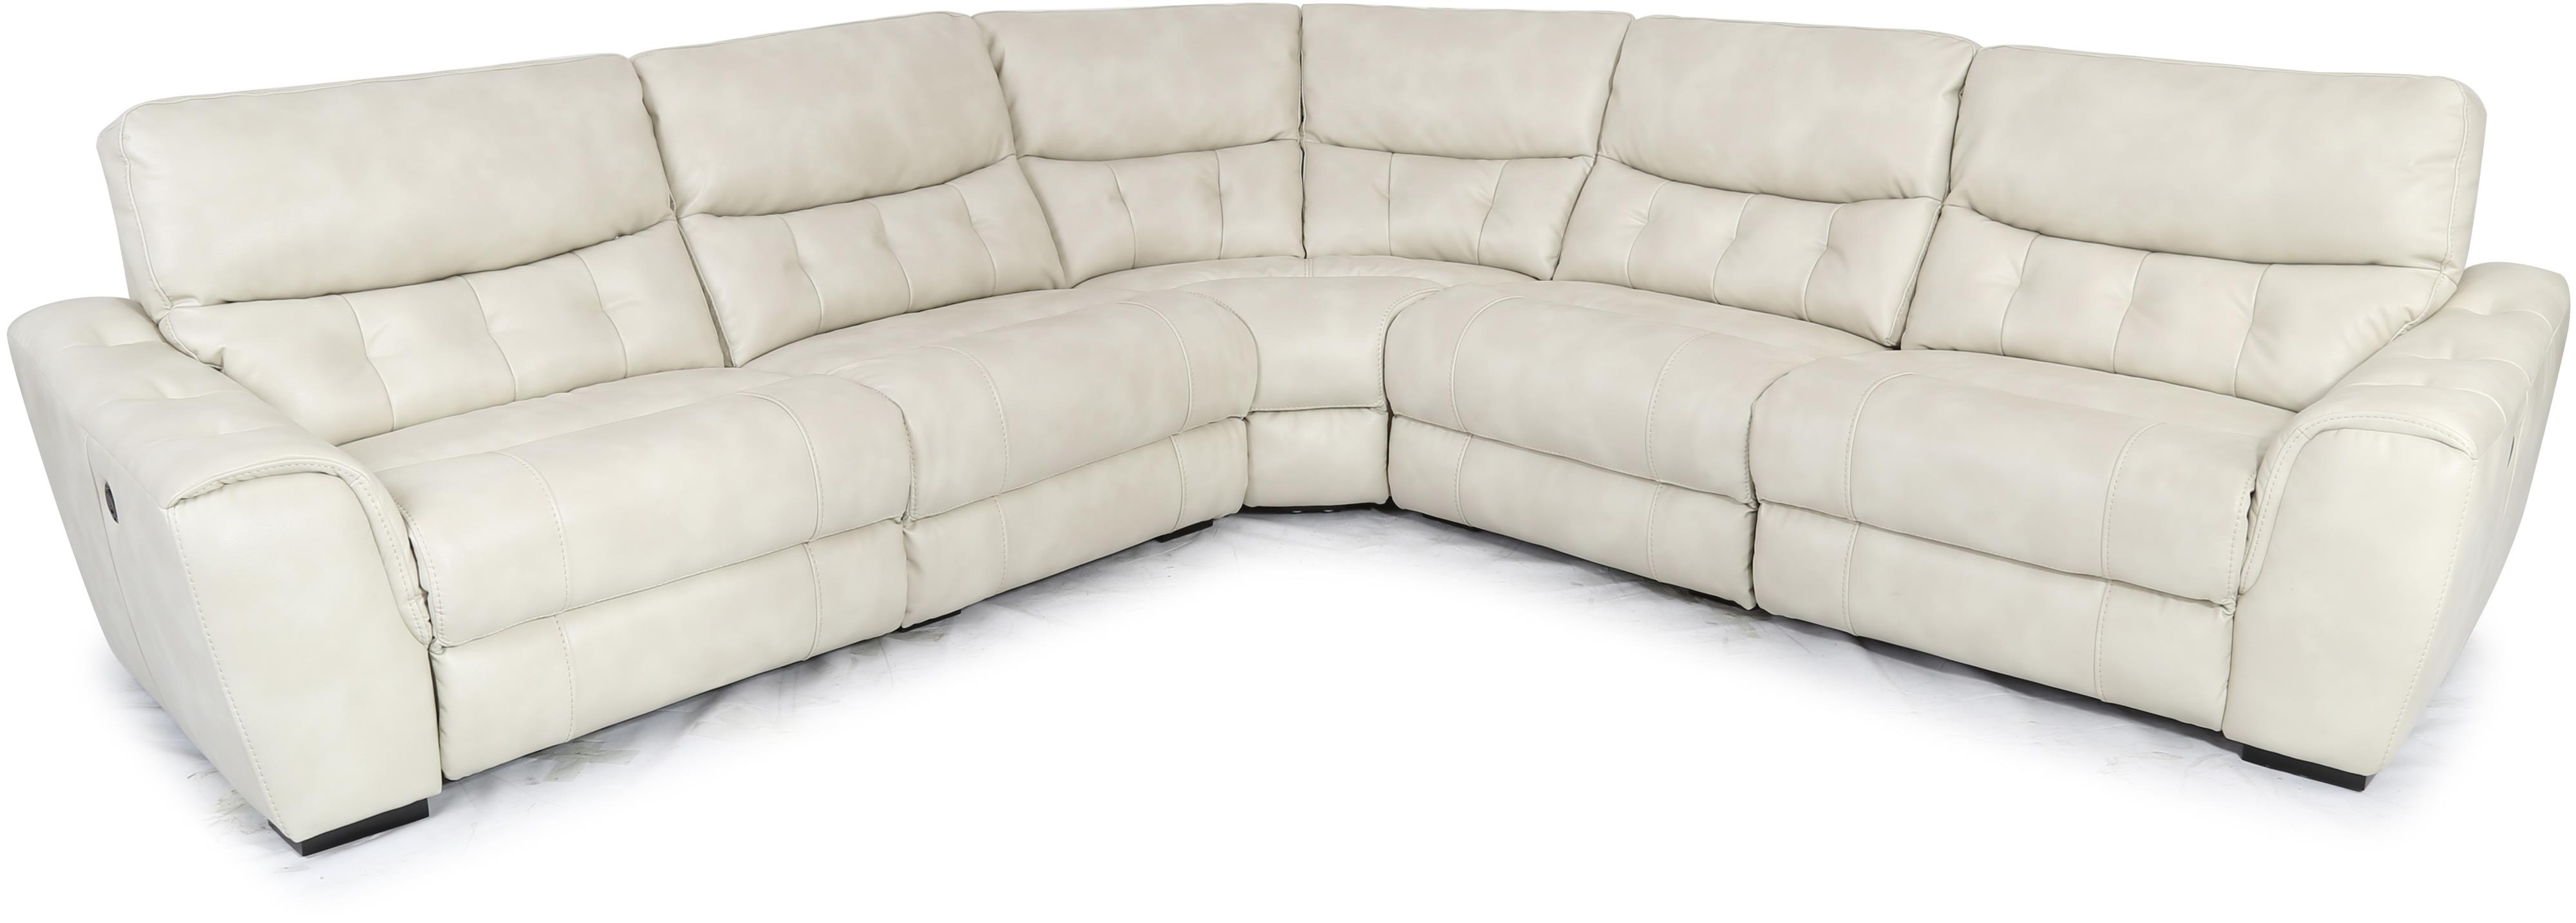 1005 Contemporary Power Reclining Sectional by Cheers at Lagniappe Home Store